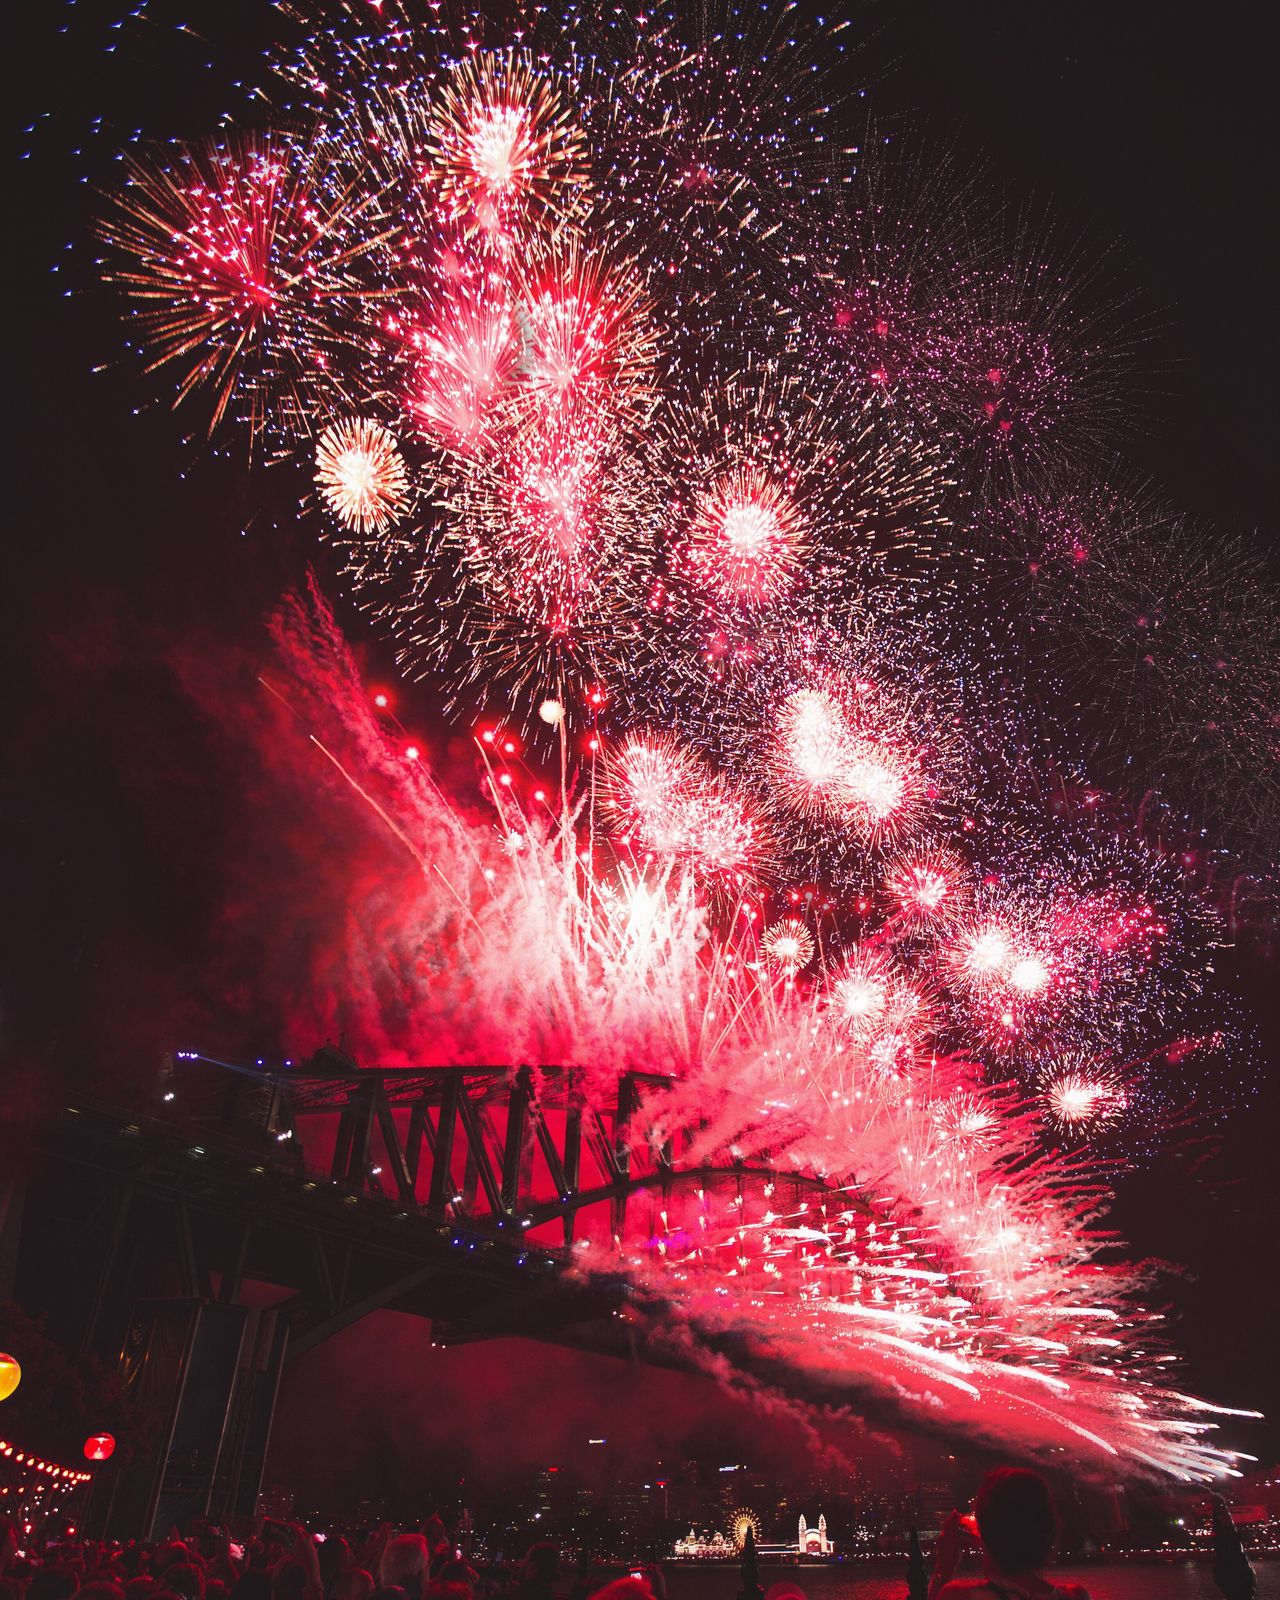 Traveling Home For The Holidays Firework Display Exploding Celebration Firework - Man Made Object Motion Night Arts Culture And Entertainment Long Exposure Sparks Illuminated Event Firework Entertainment Outdoors Smoke - Physical Structure Sky Celebration Event No People